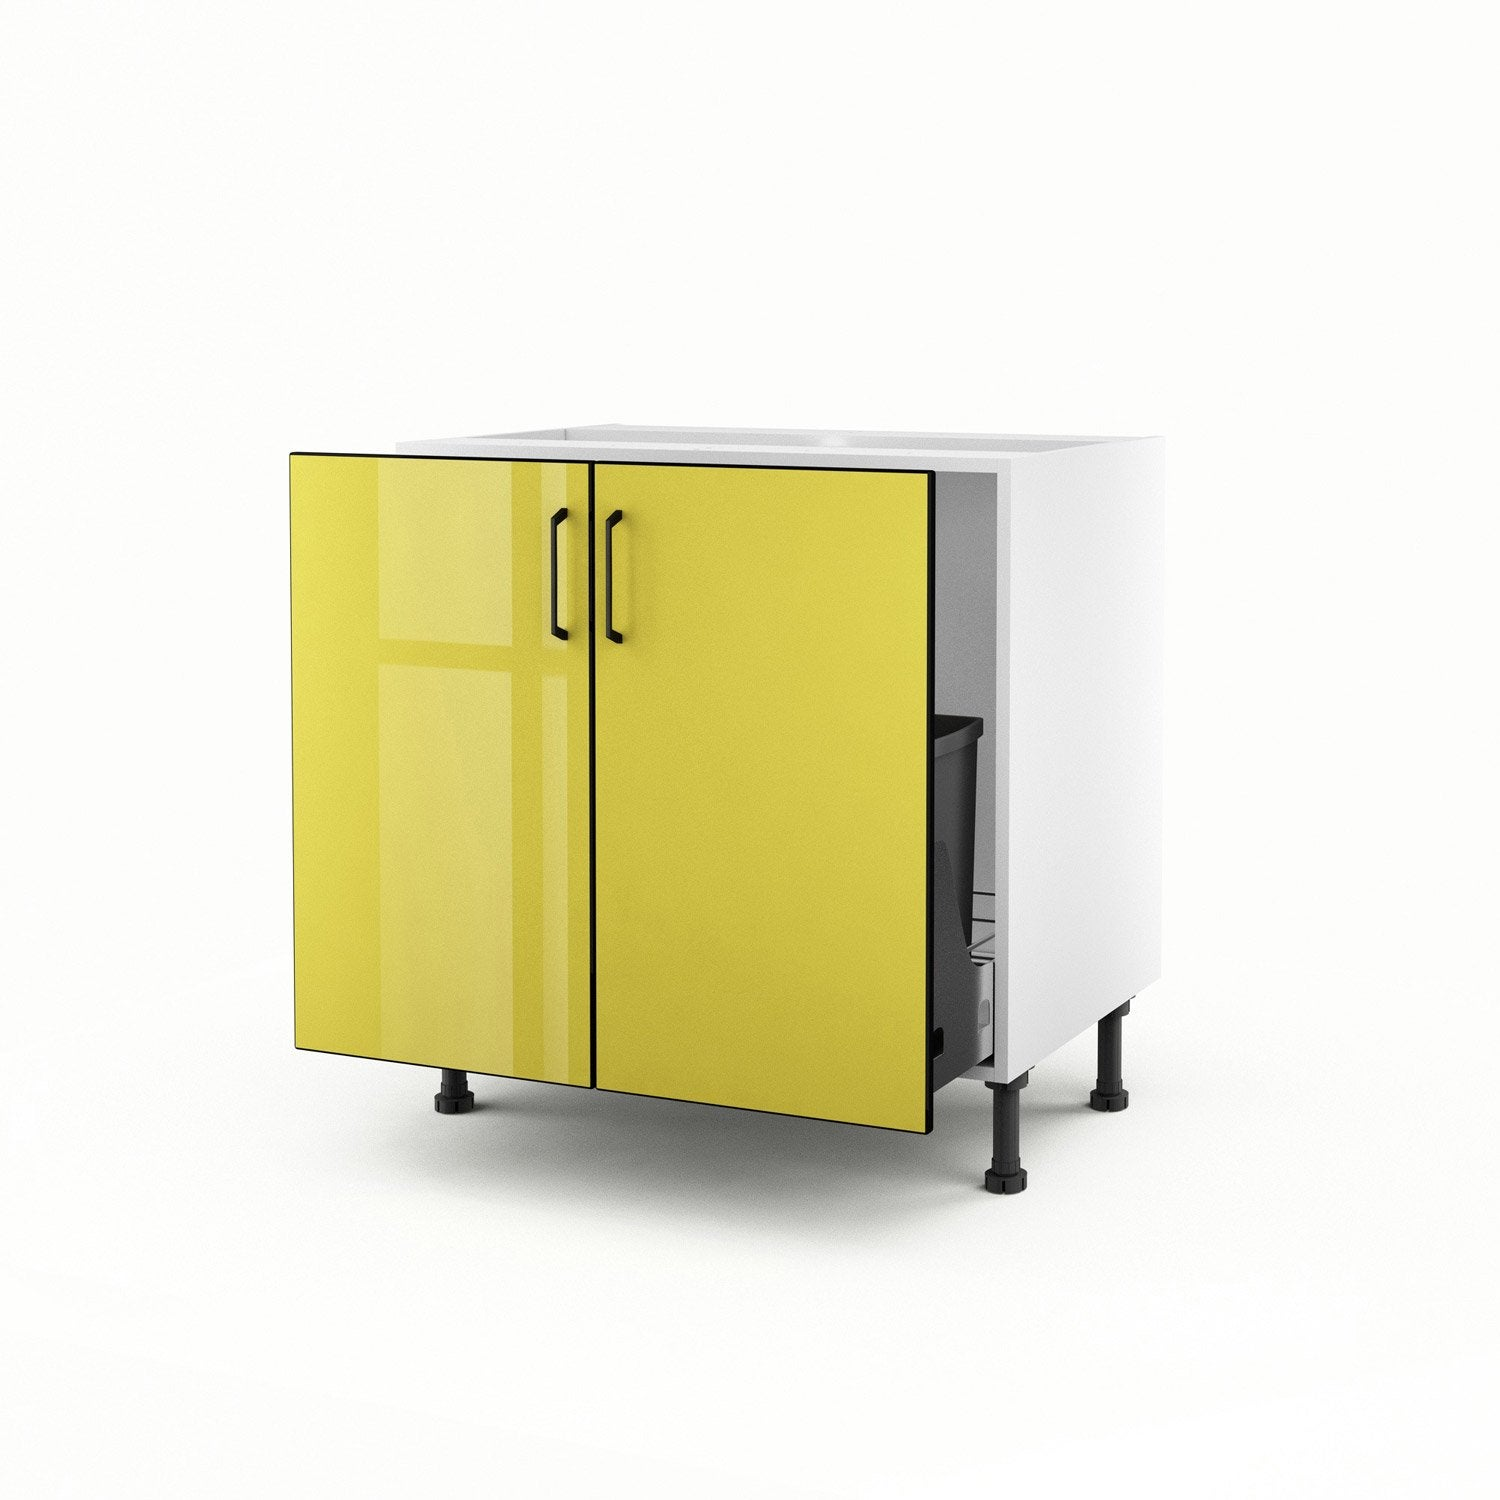 meuble de cuisine sous vier jaune 2 portes pop h70xl80xp56 cm leroy merlin. Black Bedroom Furniture Sets. Home Design Ideas